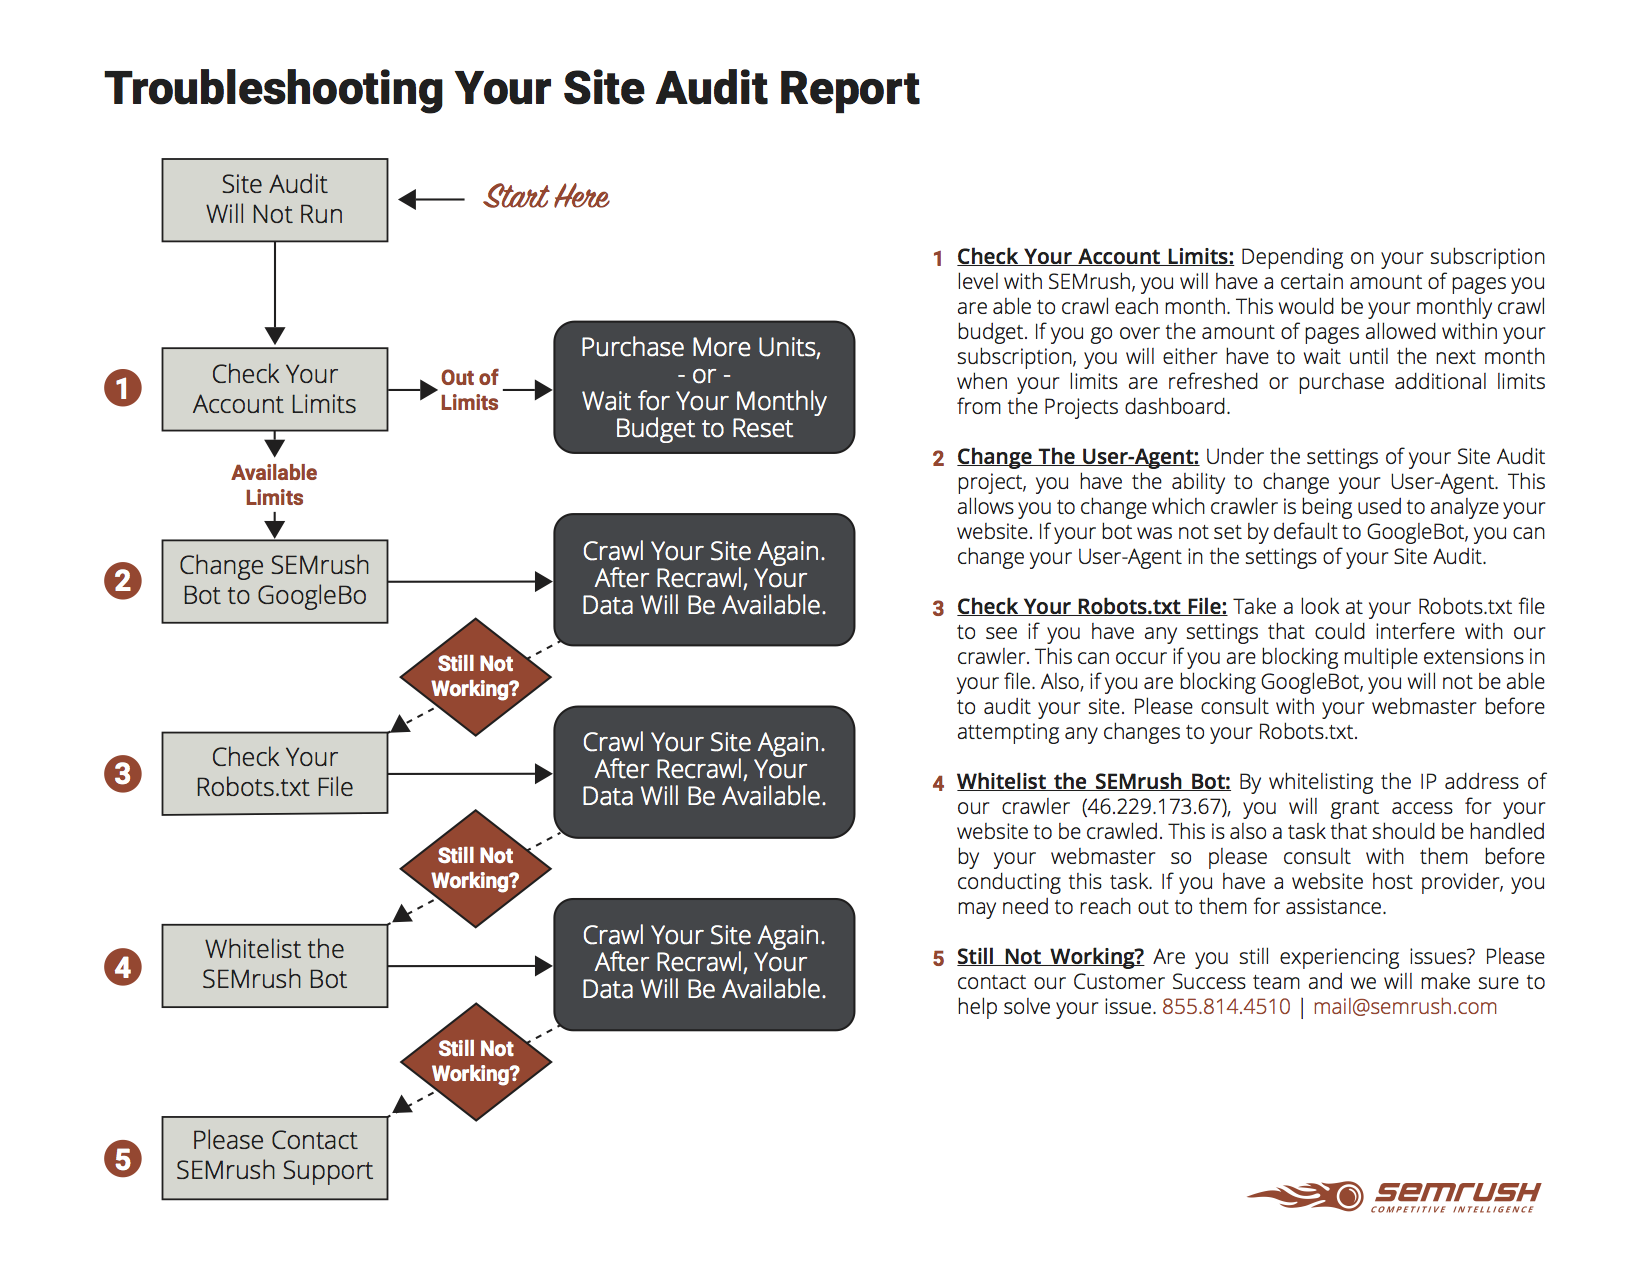 My Site Audit project will not crawl my website. What can I do? image 1